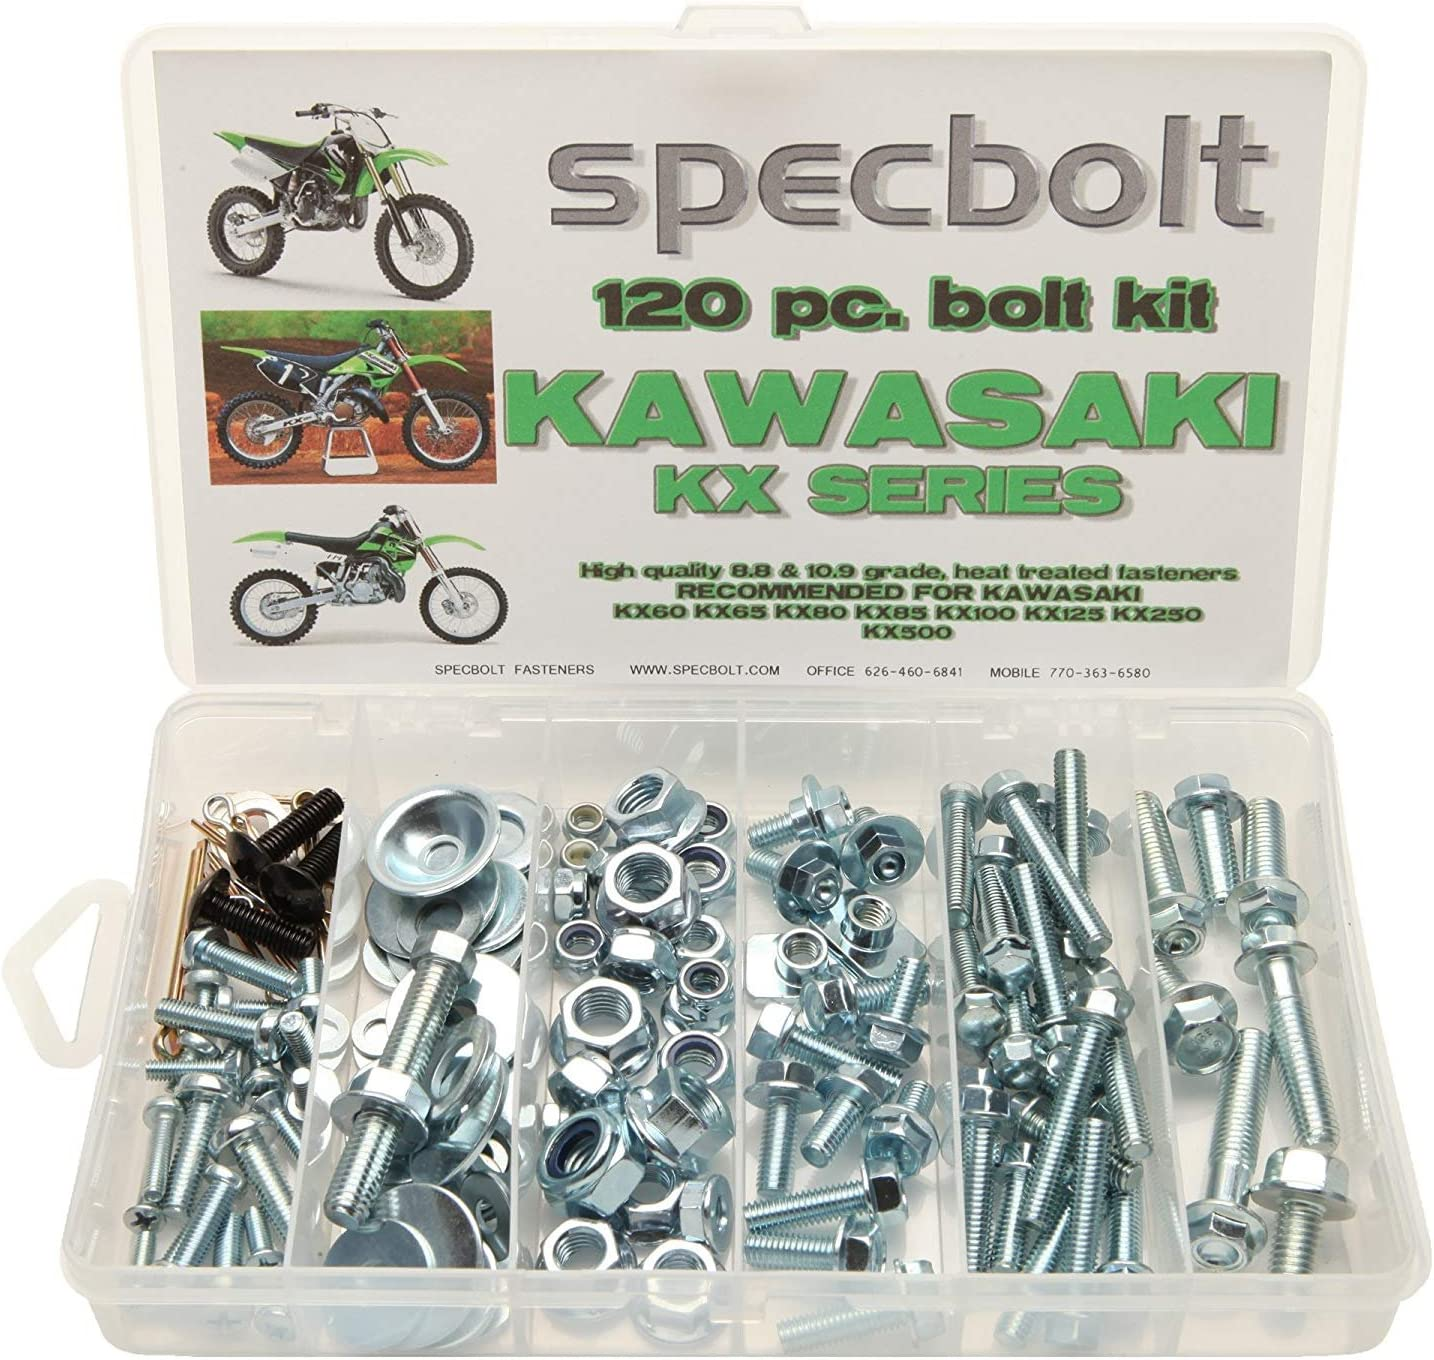 Specbolt Fasteners Brand Bolt Kit fits Kawasaki 250 pc KX 2 Stroke 60-500 Model Series Dirtbikes